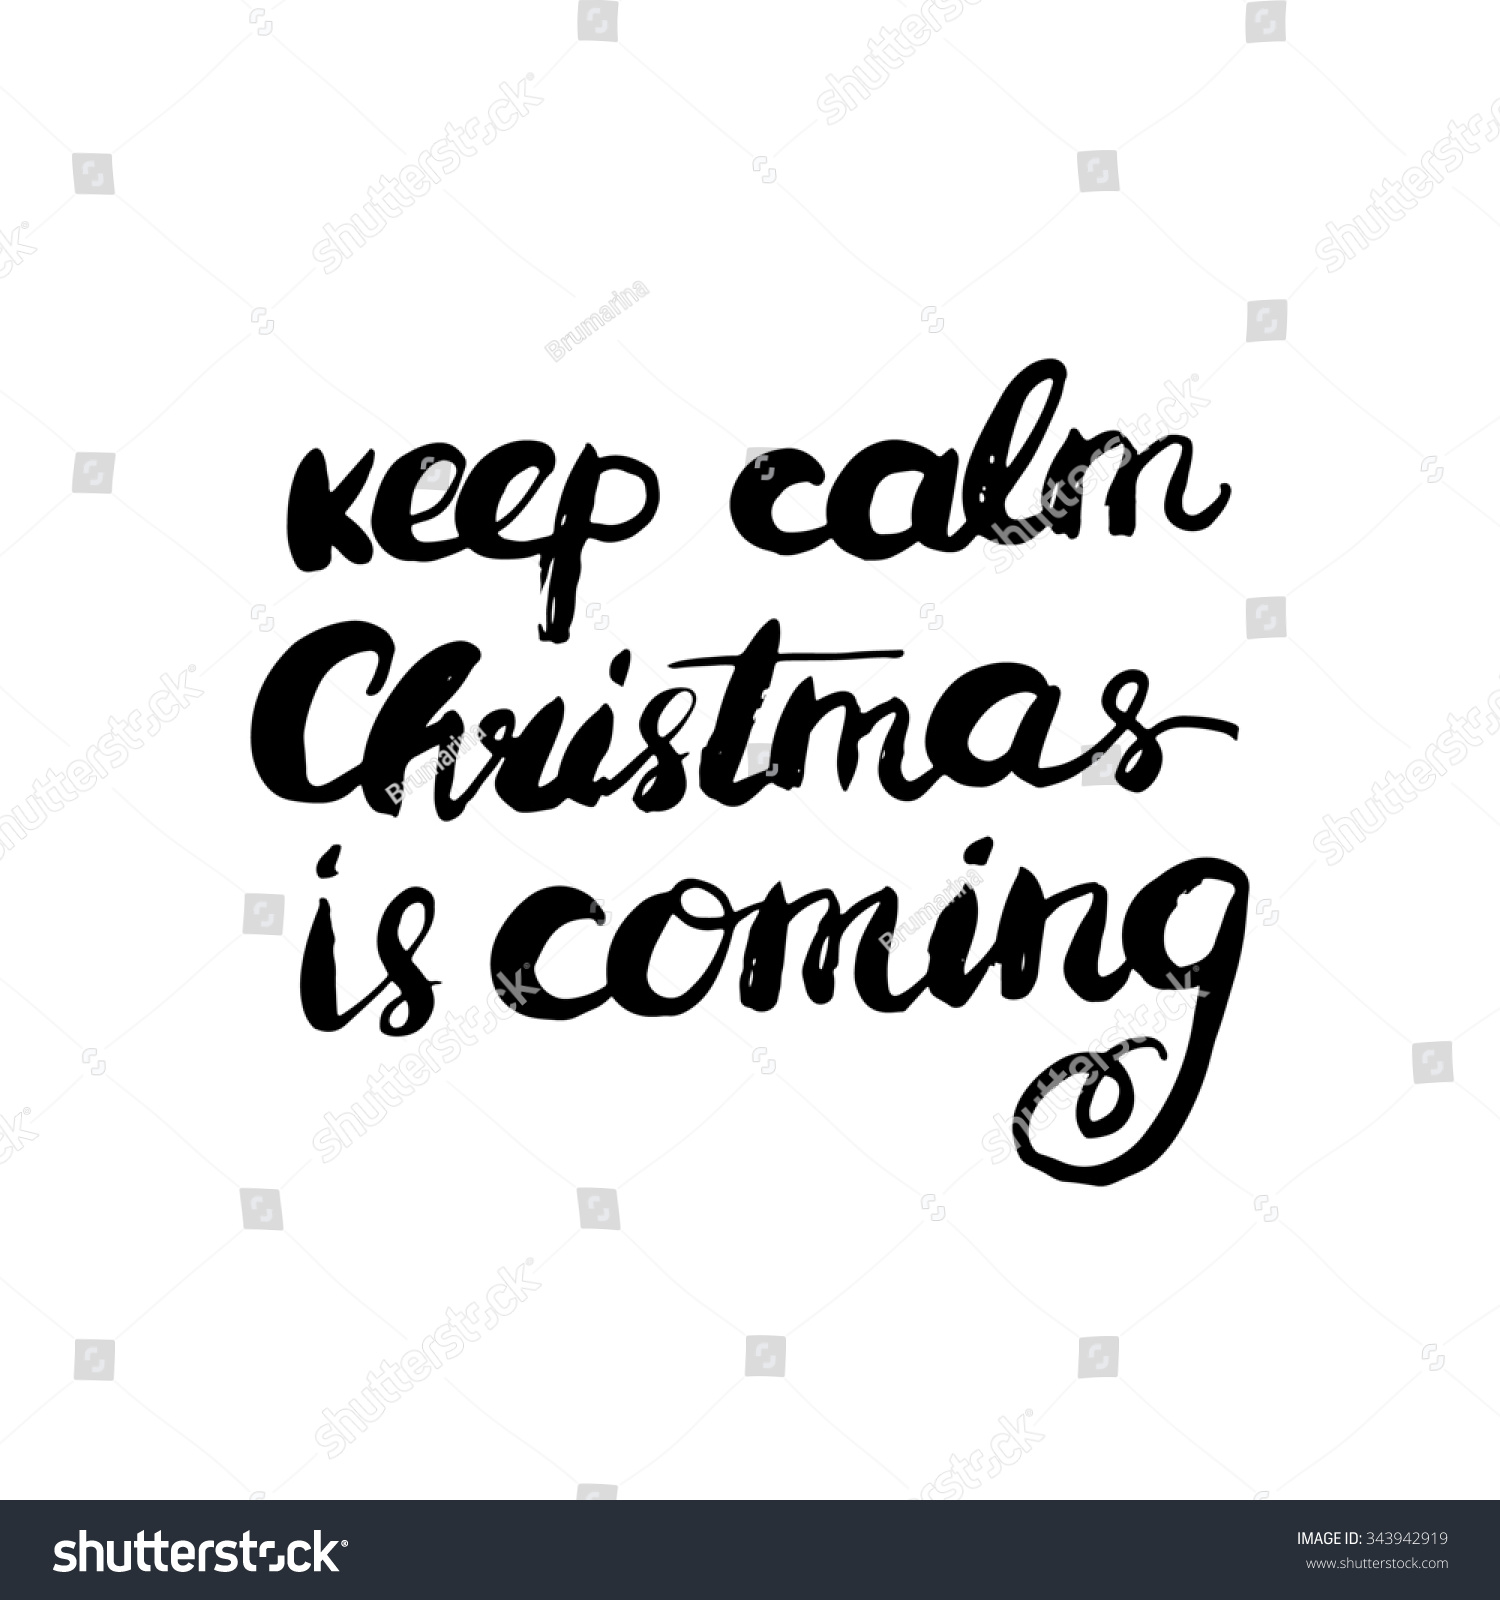 Keep Calm Christmas Coming Hand Lettered Stock Illustration ...